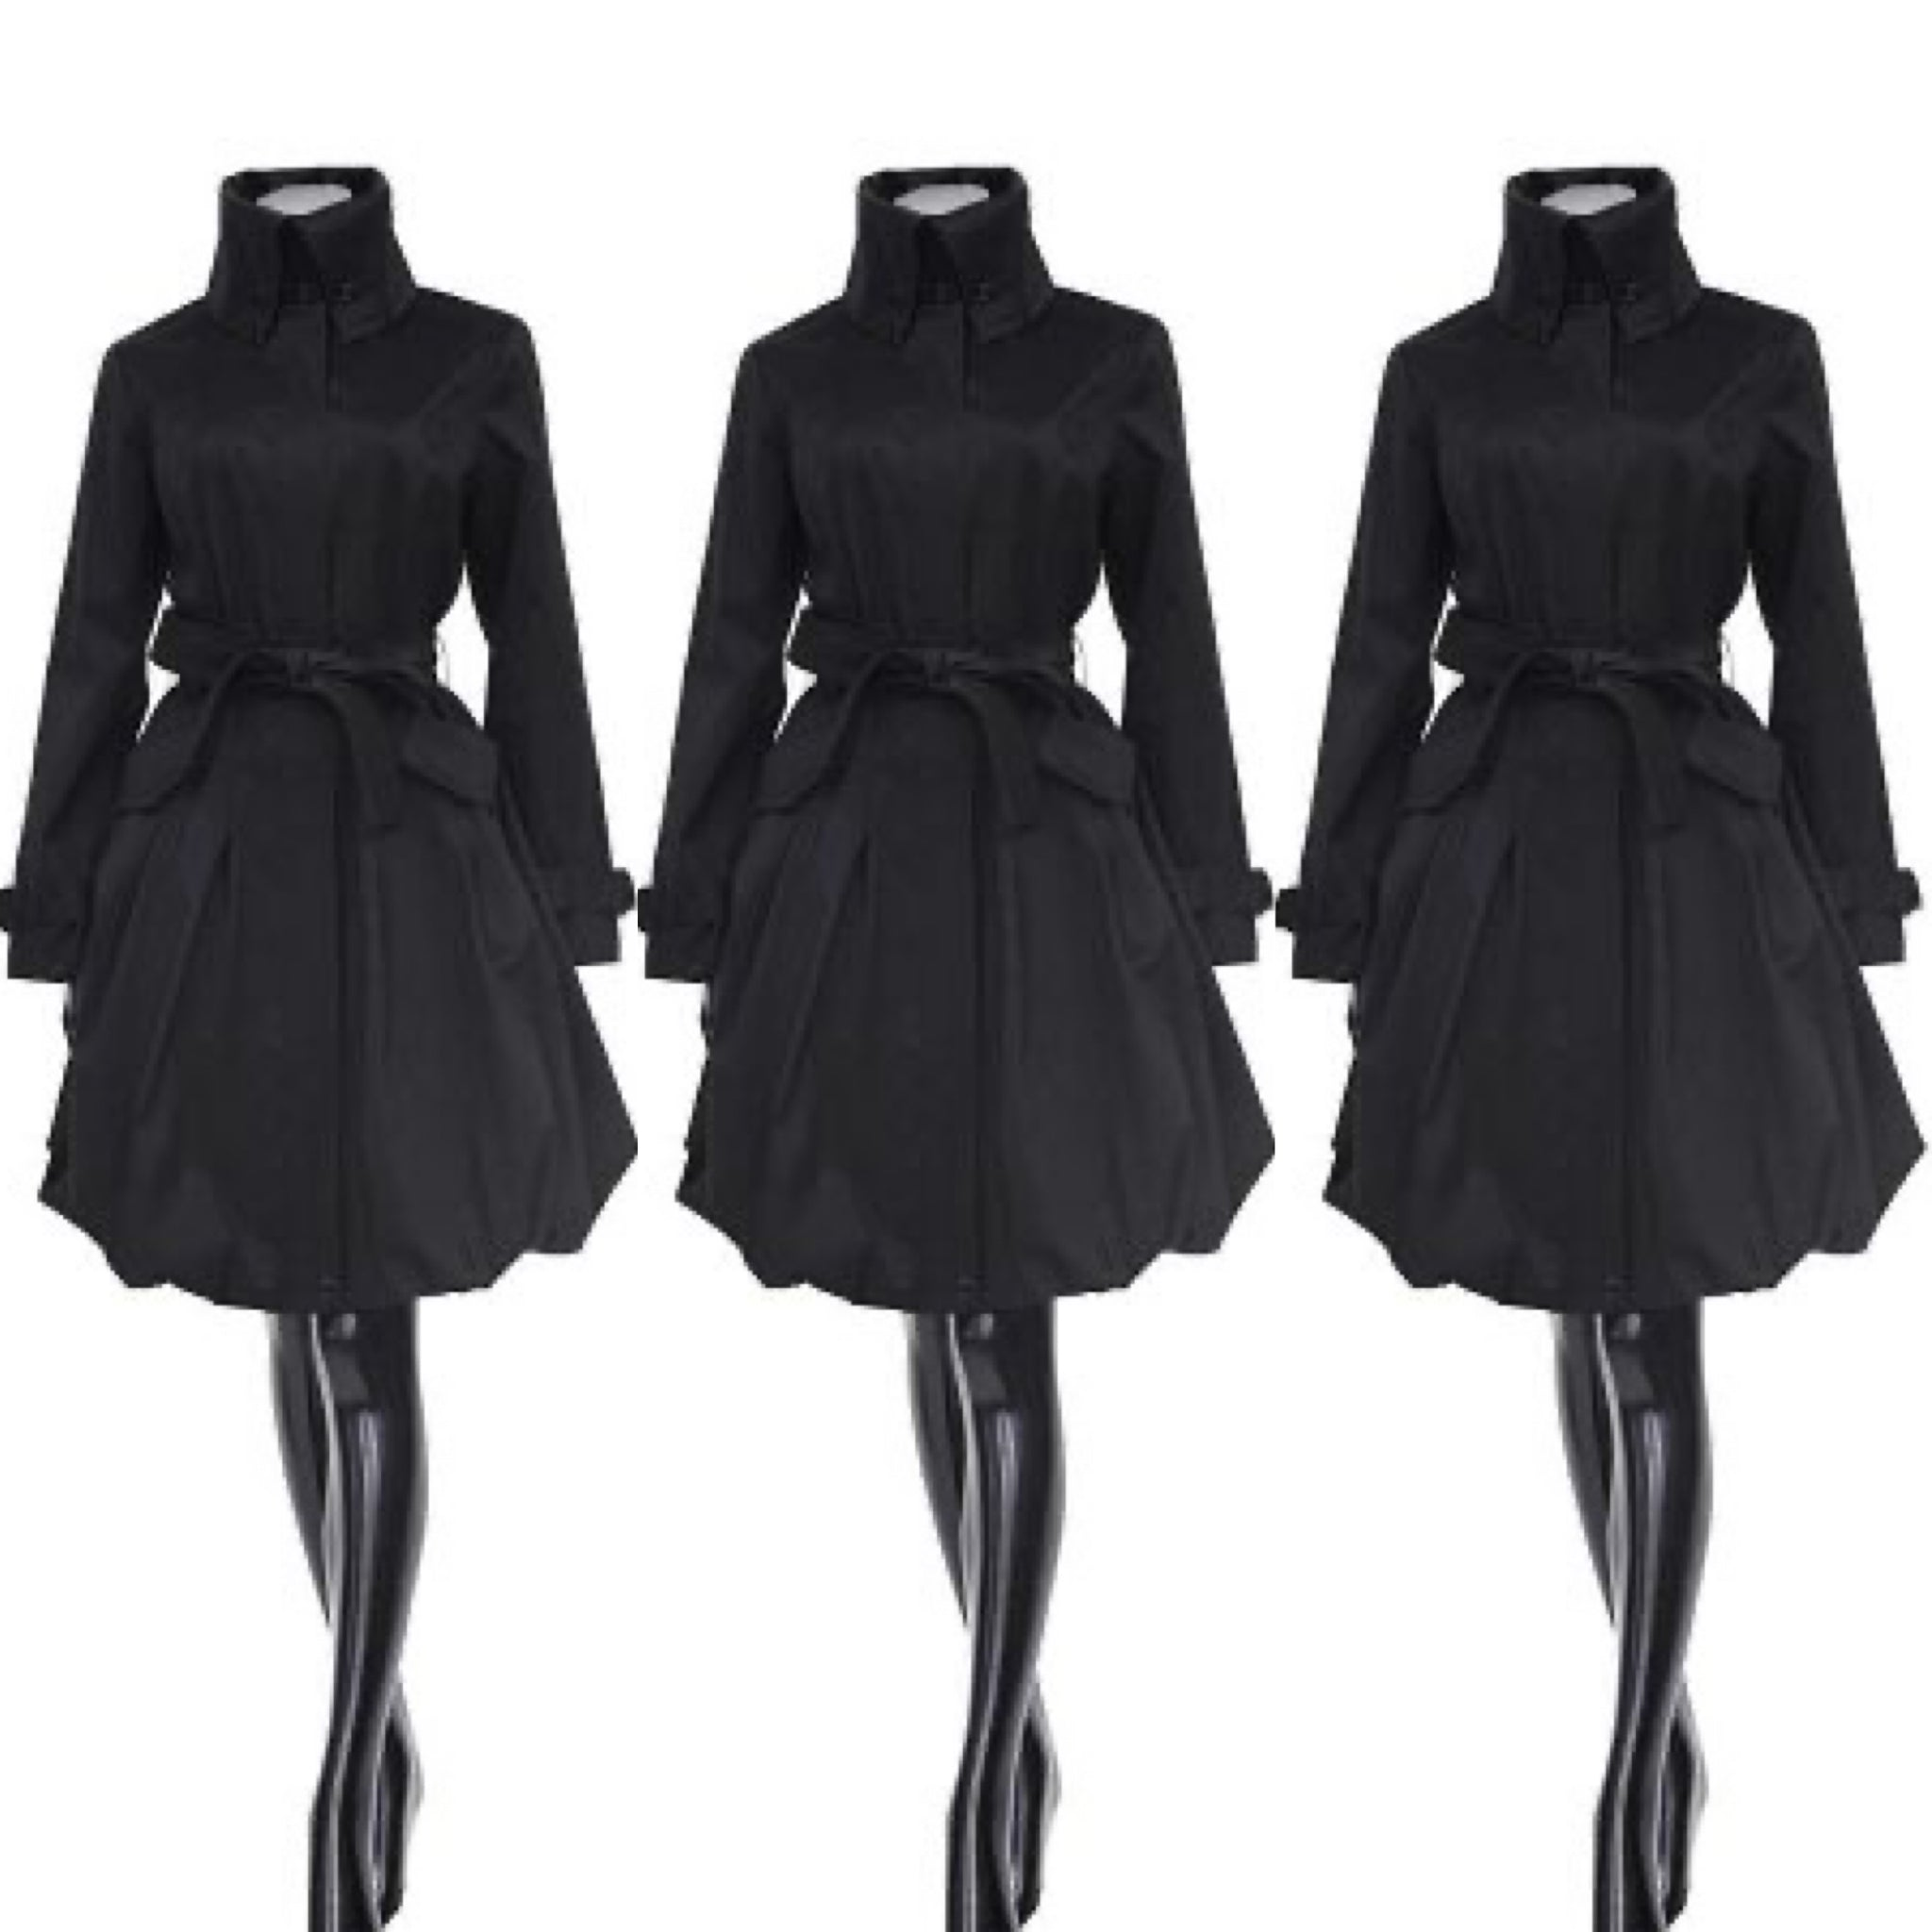 Black Modern Day Coat Dress